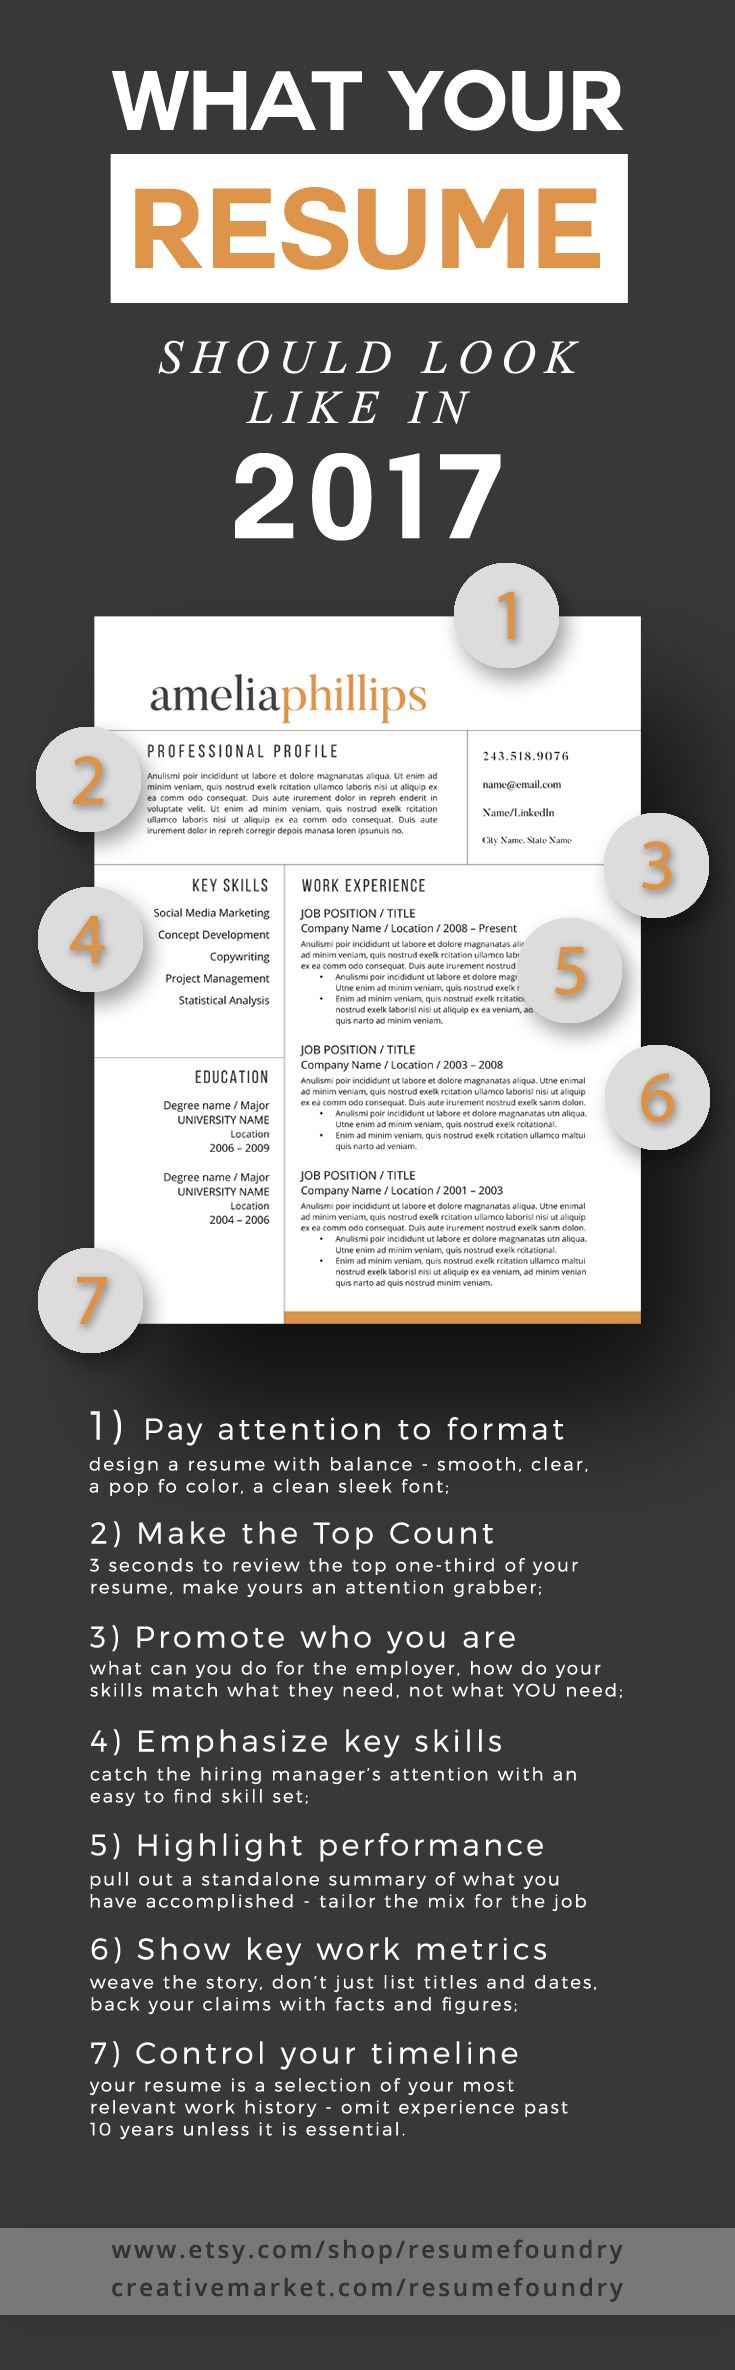 Beautiful 1 2 3 Nu Kapitel Resume Tall 12 Inch Ruler Template Rectangular 15 Year Old Resumes 1st Birthday Invitation Template Youthful 2 Page Resume Format Doc Pink2007 Word Templates A Functional Or Skills Based Resume Has Several Advantages Over A ..